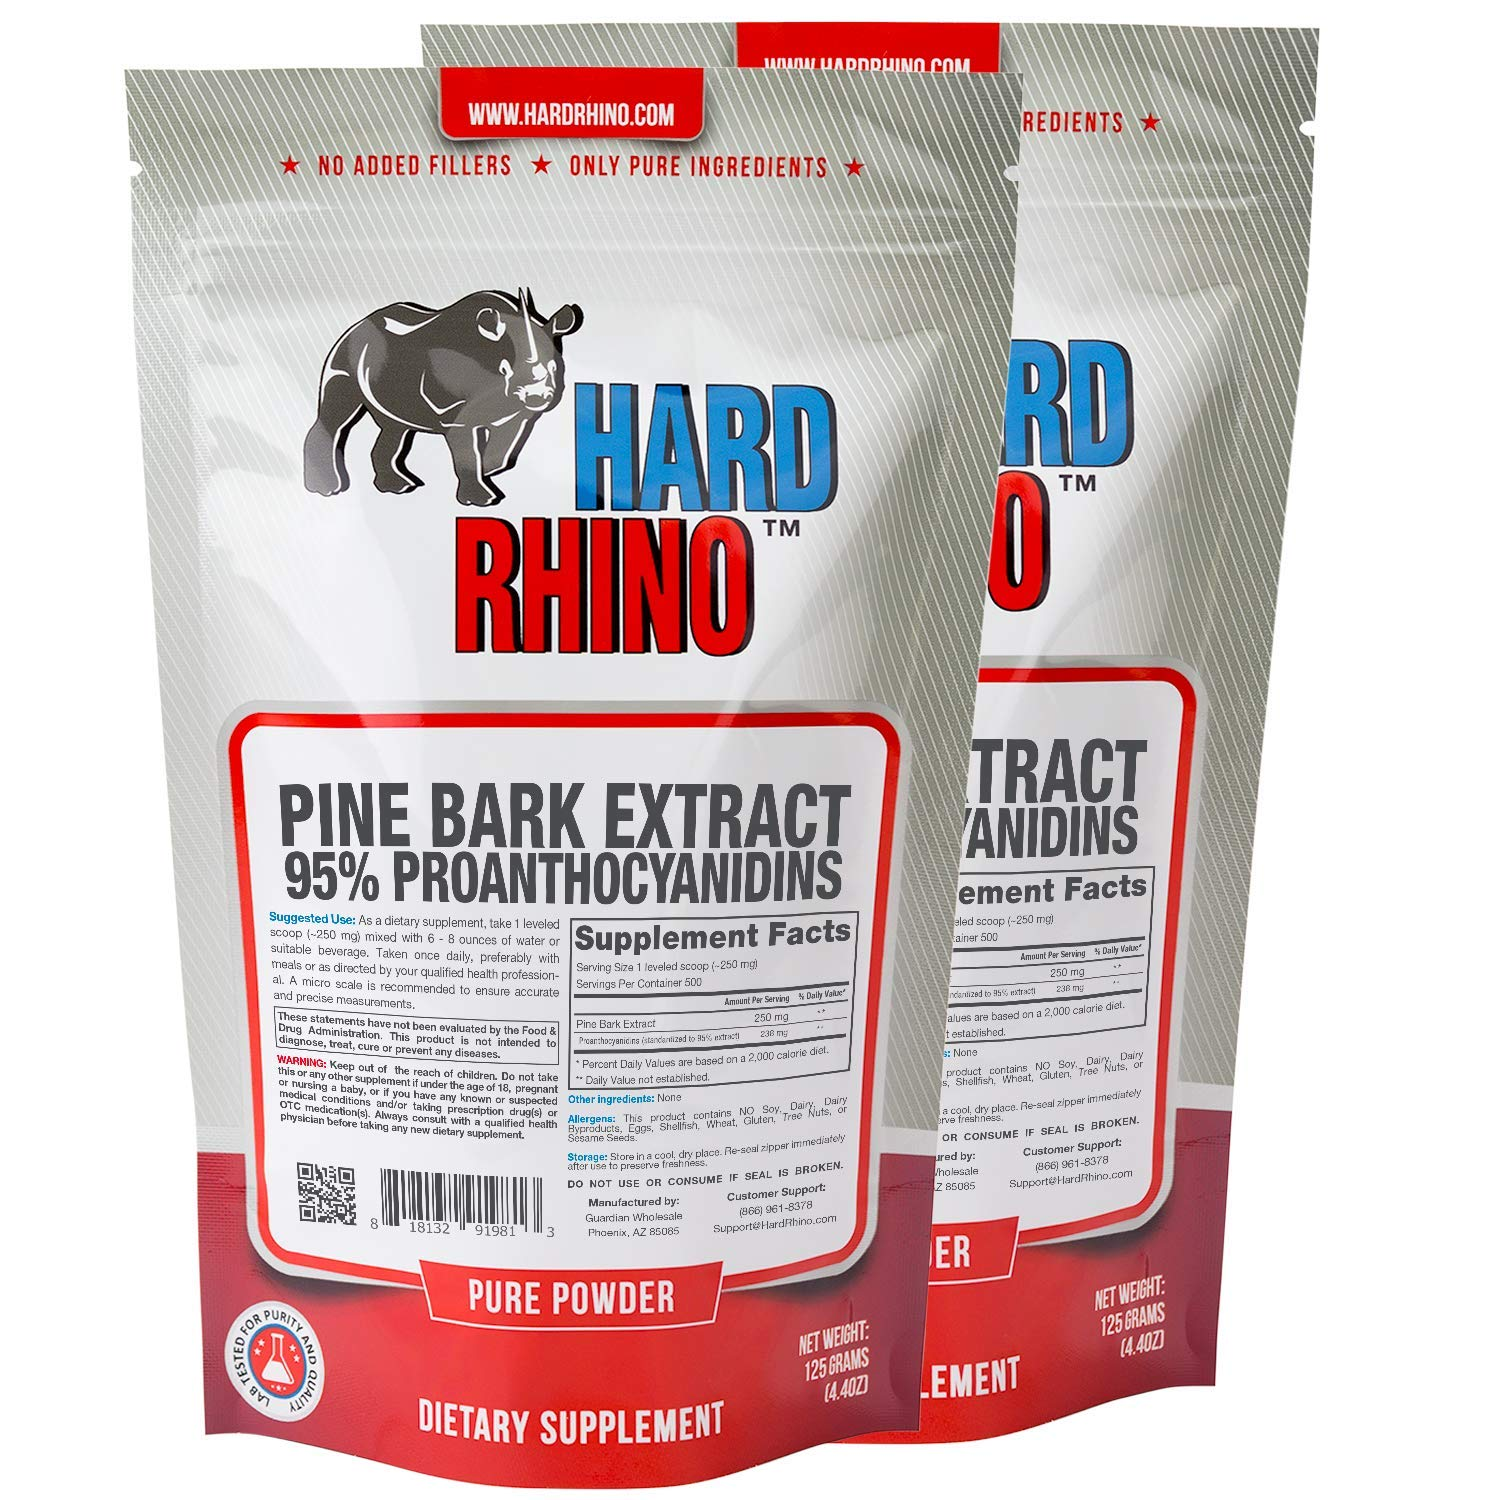 Hard Rhino Pine Bark Extract 95% Proanthocyanidins Powder, 250 Grams (8.8 Oz), Unflavored, Lab-Tested, Scoop Included